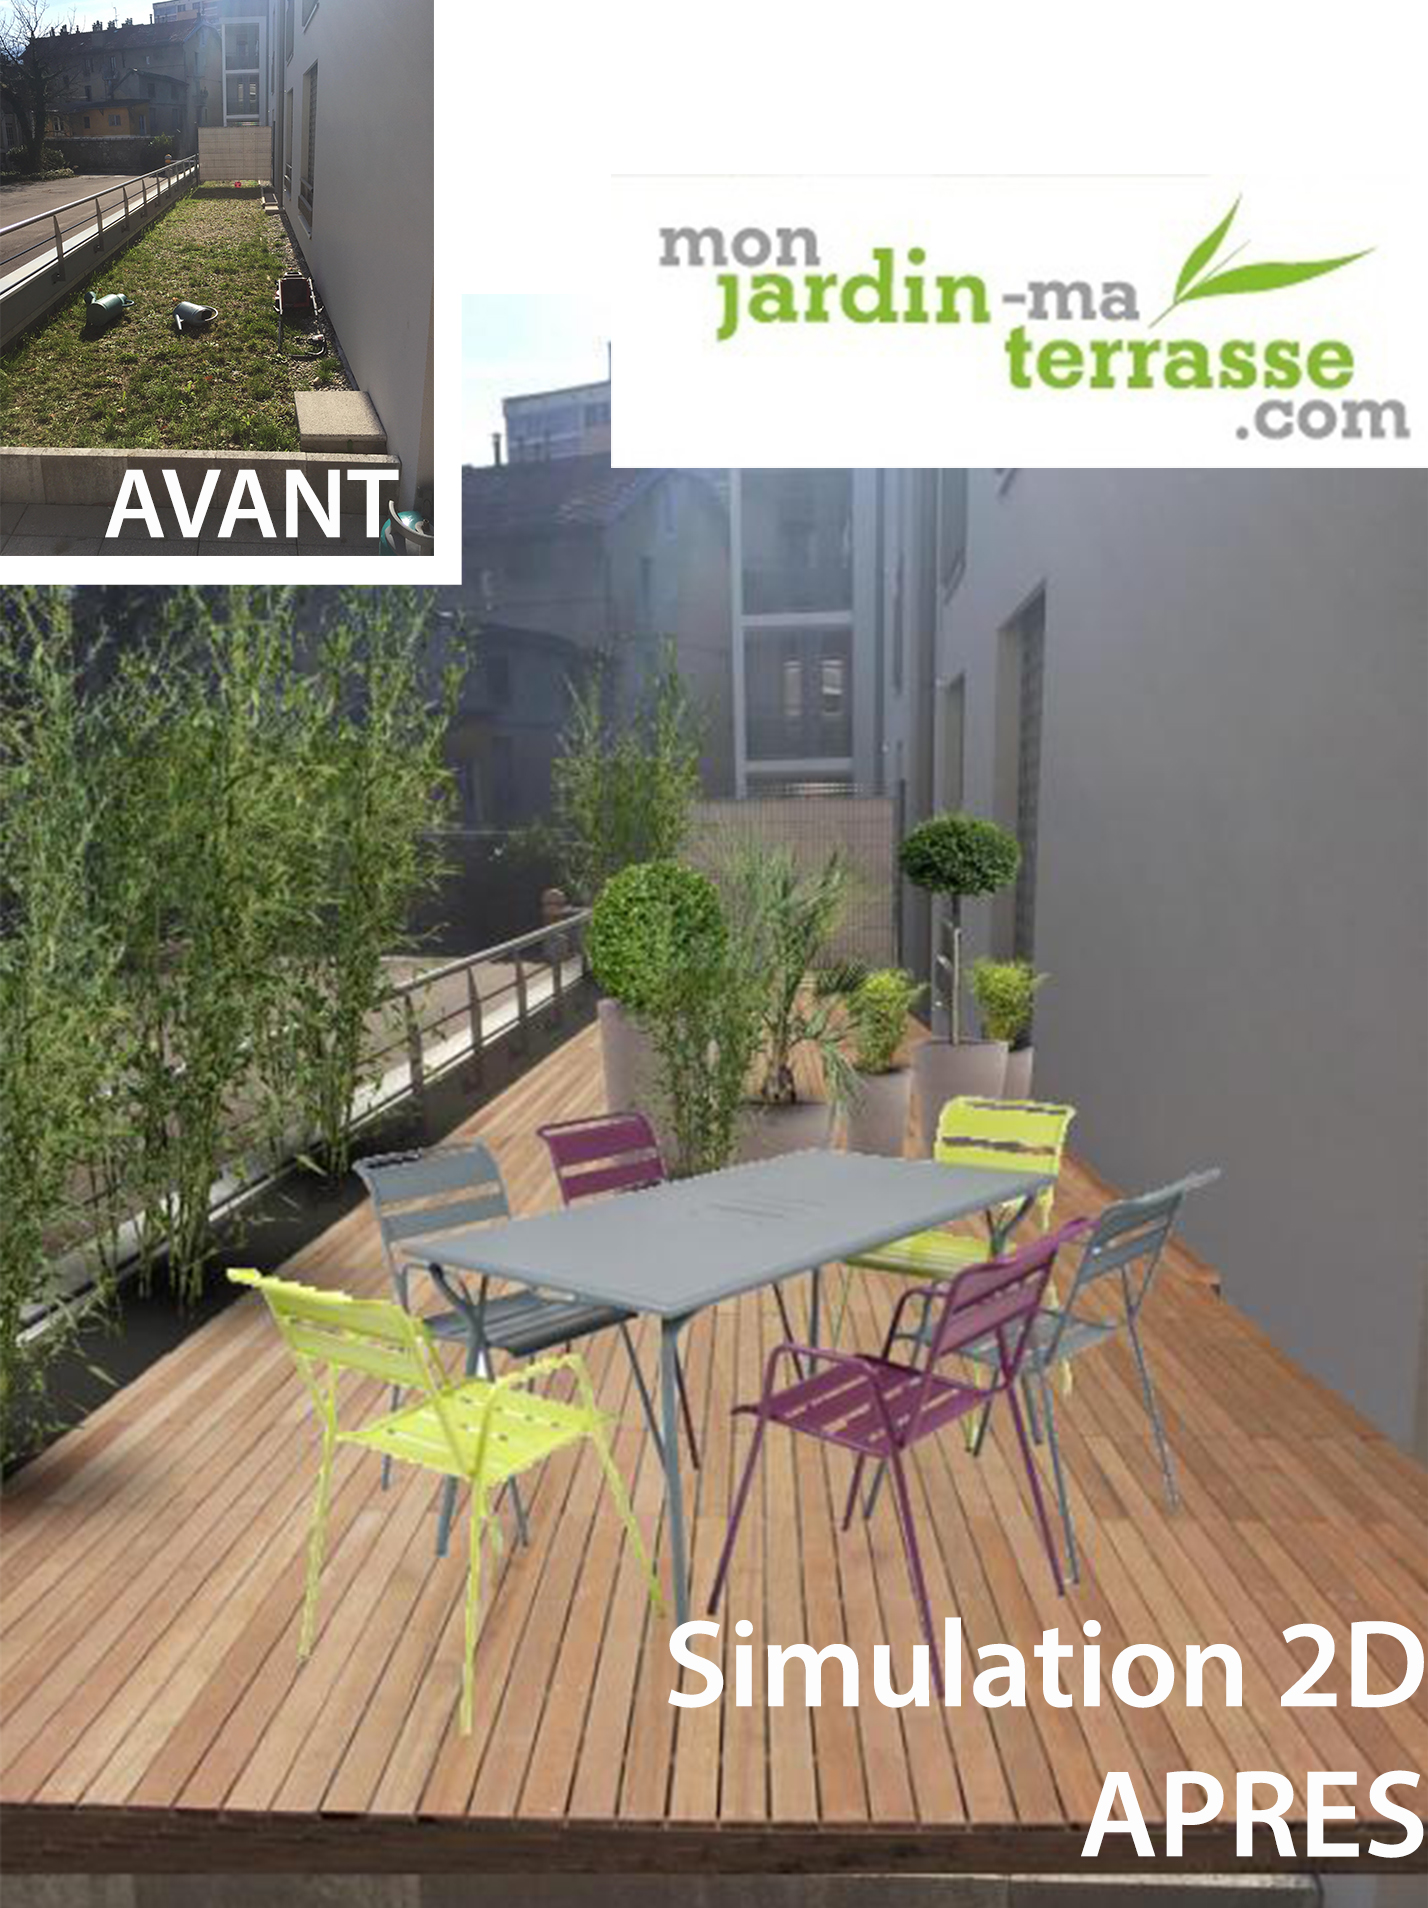 Am nagement du toit terrasse d un appartement monjardin for Terrasse appartement amenagement